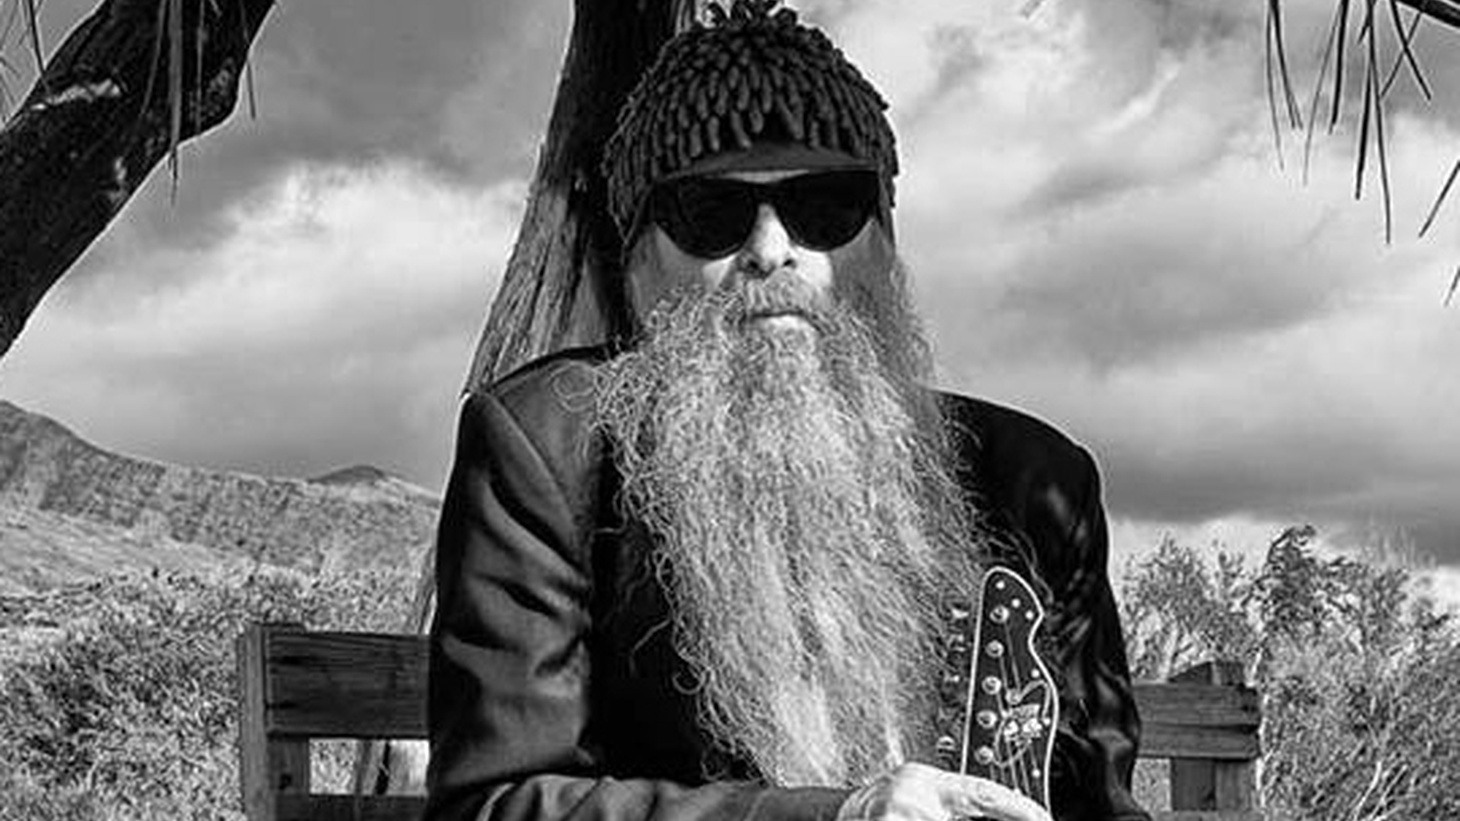 ZZ Top vocalist, guitarist and Rock & Roll Hall of Fame inductee Billy Gibbons strikes out on his own with a debut album fueled by his love of Afro-Cuban rhythms.